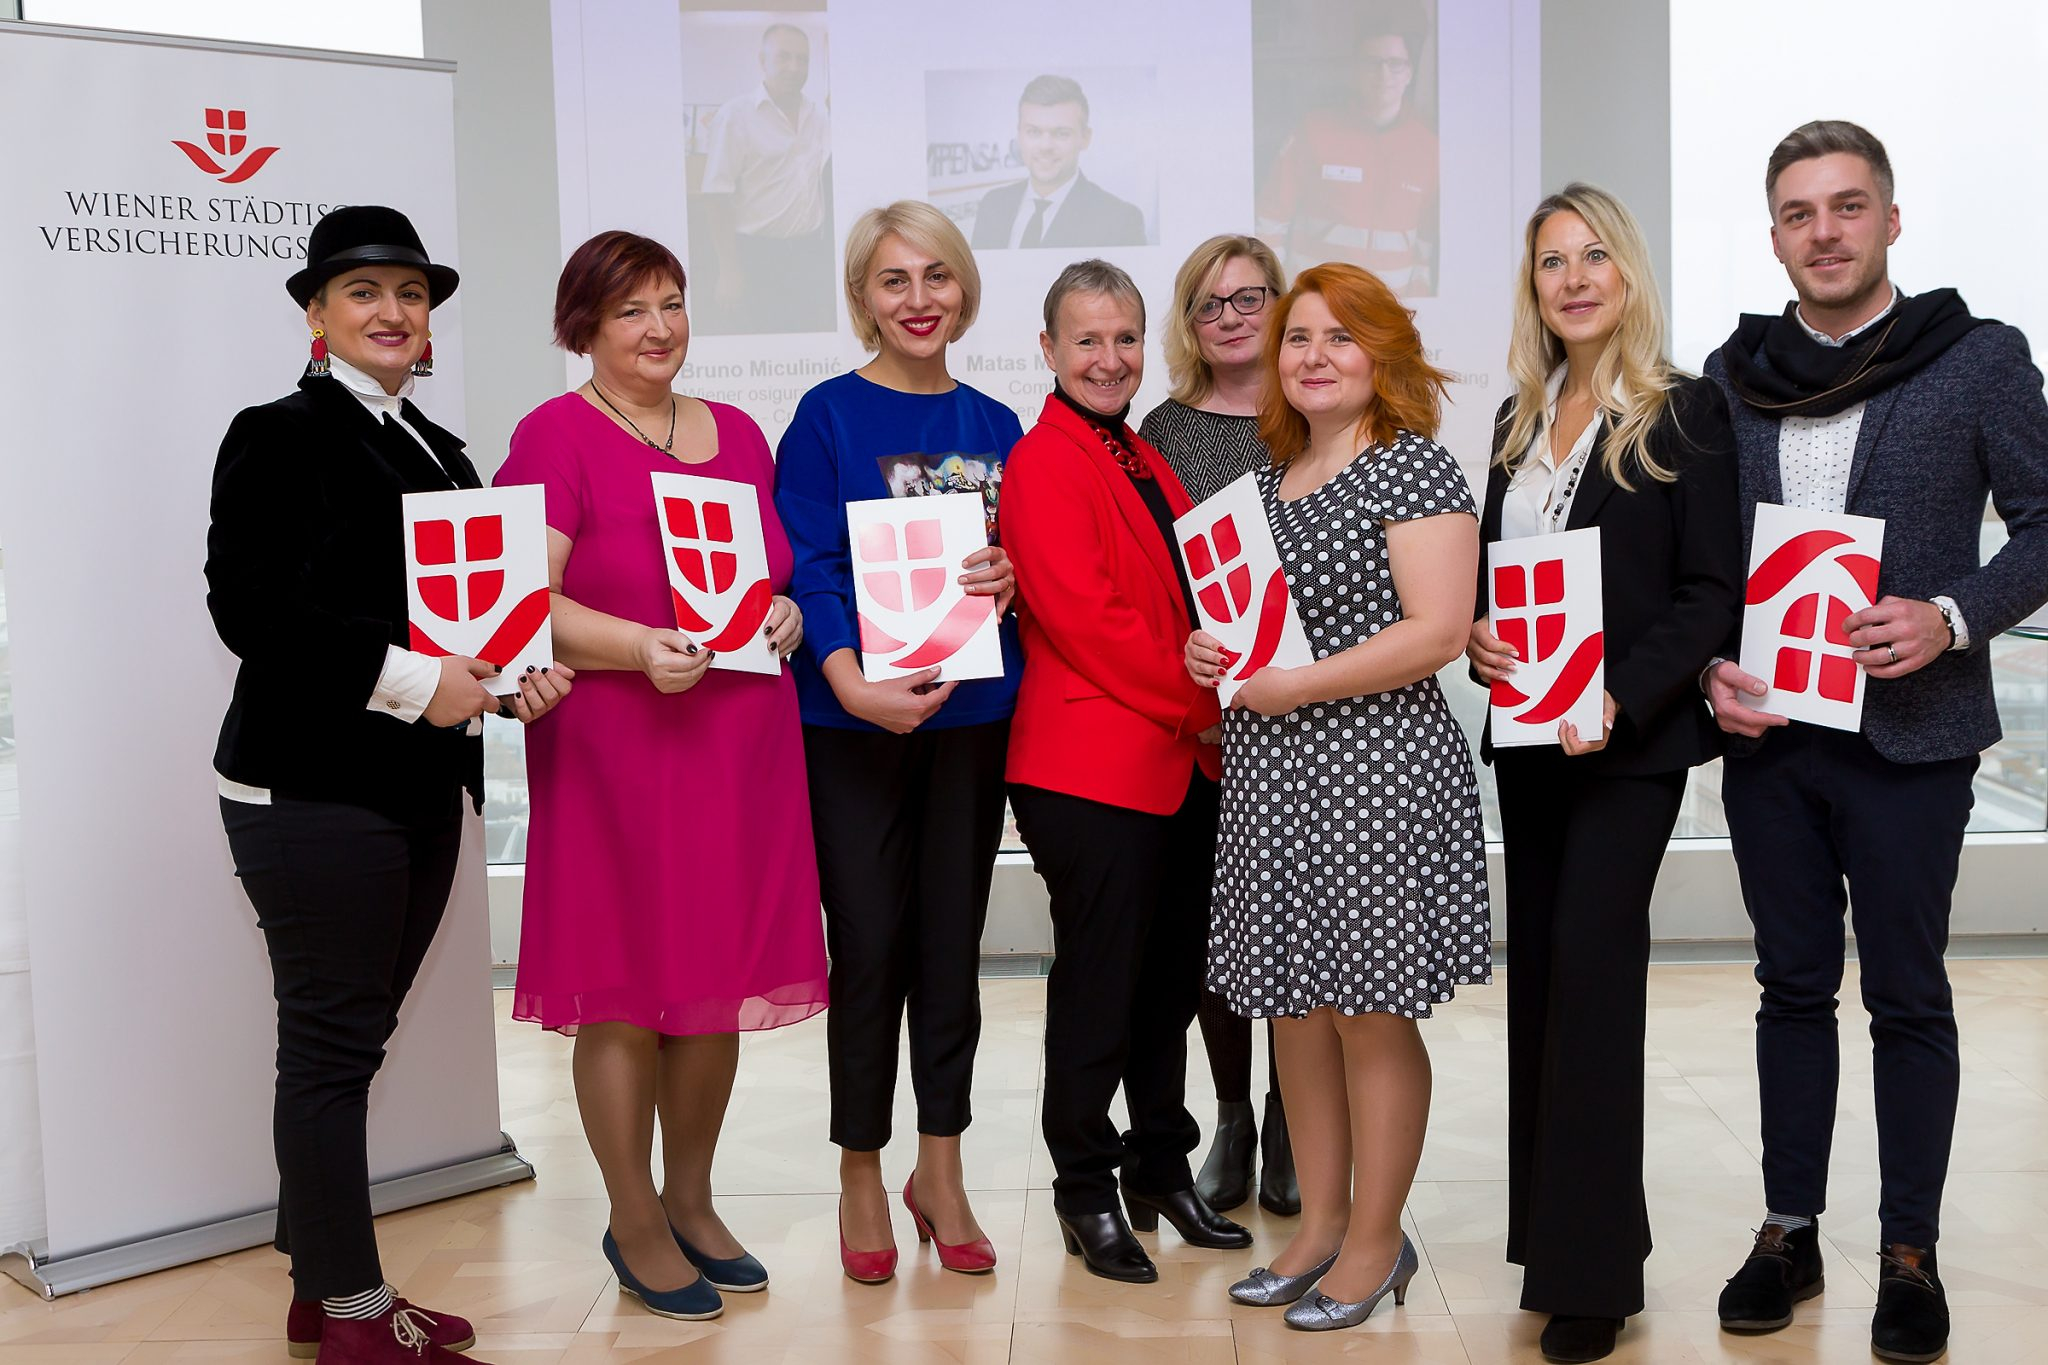 On the picture (from left to right): Nino Sabakhtarishvili (Georgia), Daiva Pikūnienė (Lithuania), Nino Kochishvili (Georgia), Helene Kanta (Member of the Managing Board of Wiener Städtische Versicherungsverein), Barbara Grötschnig (Head of VIG Group Sponsoring), Veronika Stránská (Czech Republic), Martina Christidis (Austria) &  Nika Katcharava (Georgia) © Ludwig Schedl